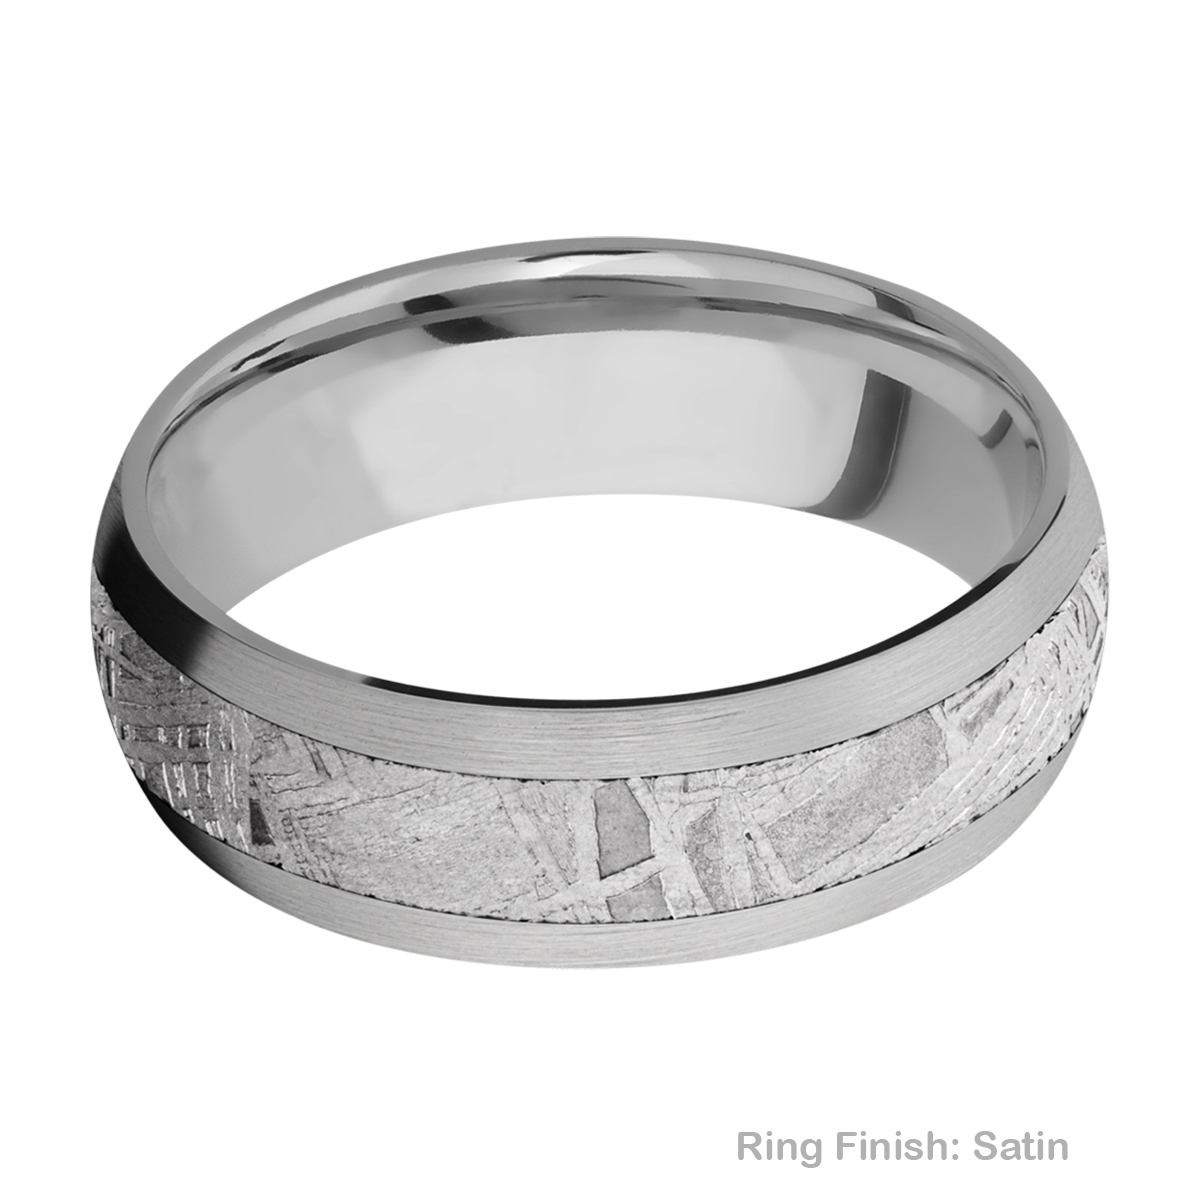 Lashbrook 7D14/METEORITE Titanium Wedding Ring or Band Alternative View 5